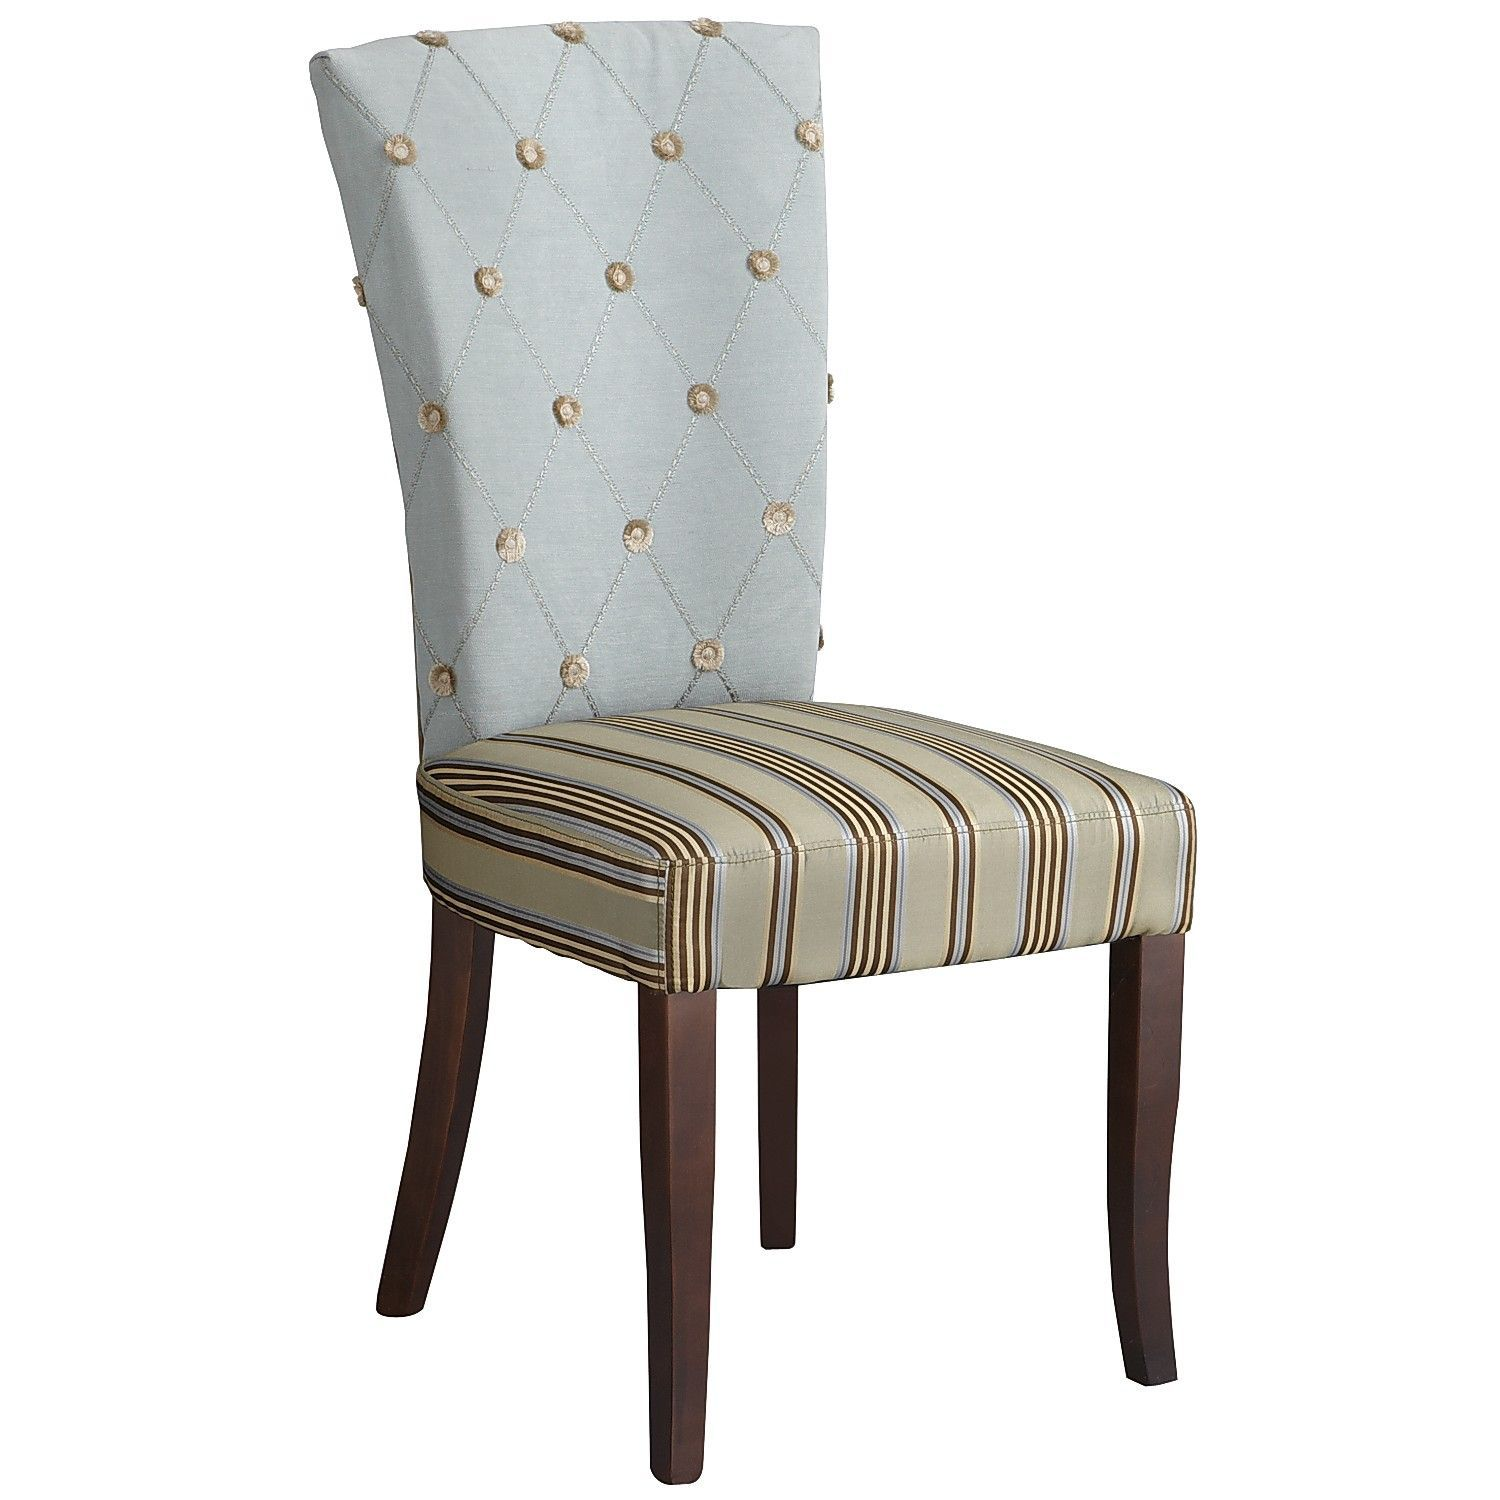 Bedroom Chair Adelaide Swing Table Dining Pier1 Us For The Home